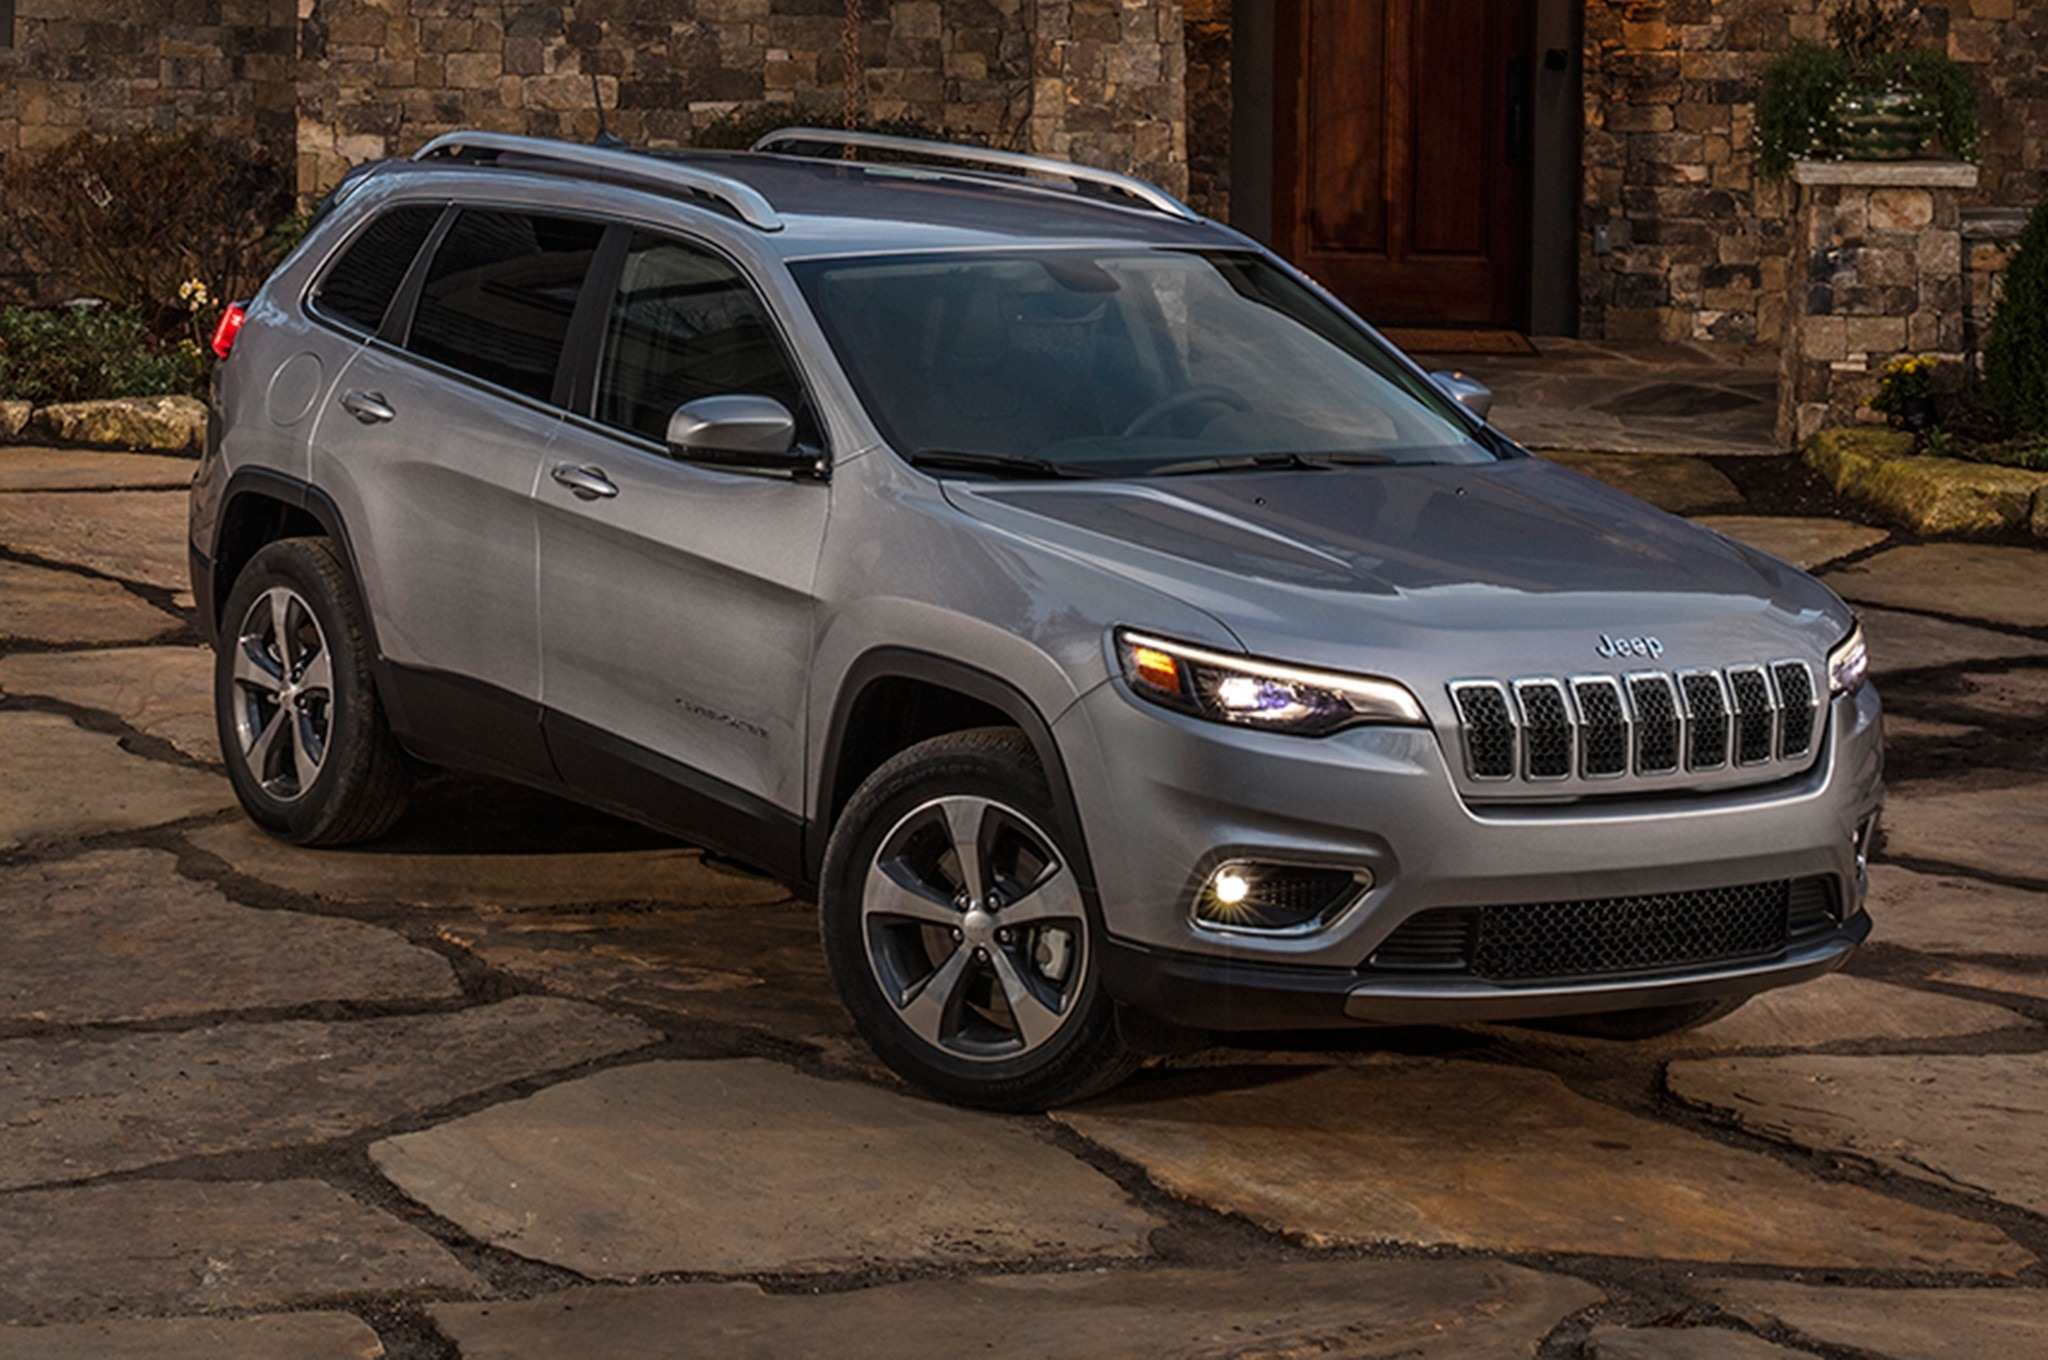 88 Great 2019 Jeep Compass Release Date Release Date by 2019 Jeep Compass Release Date